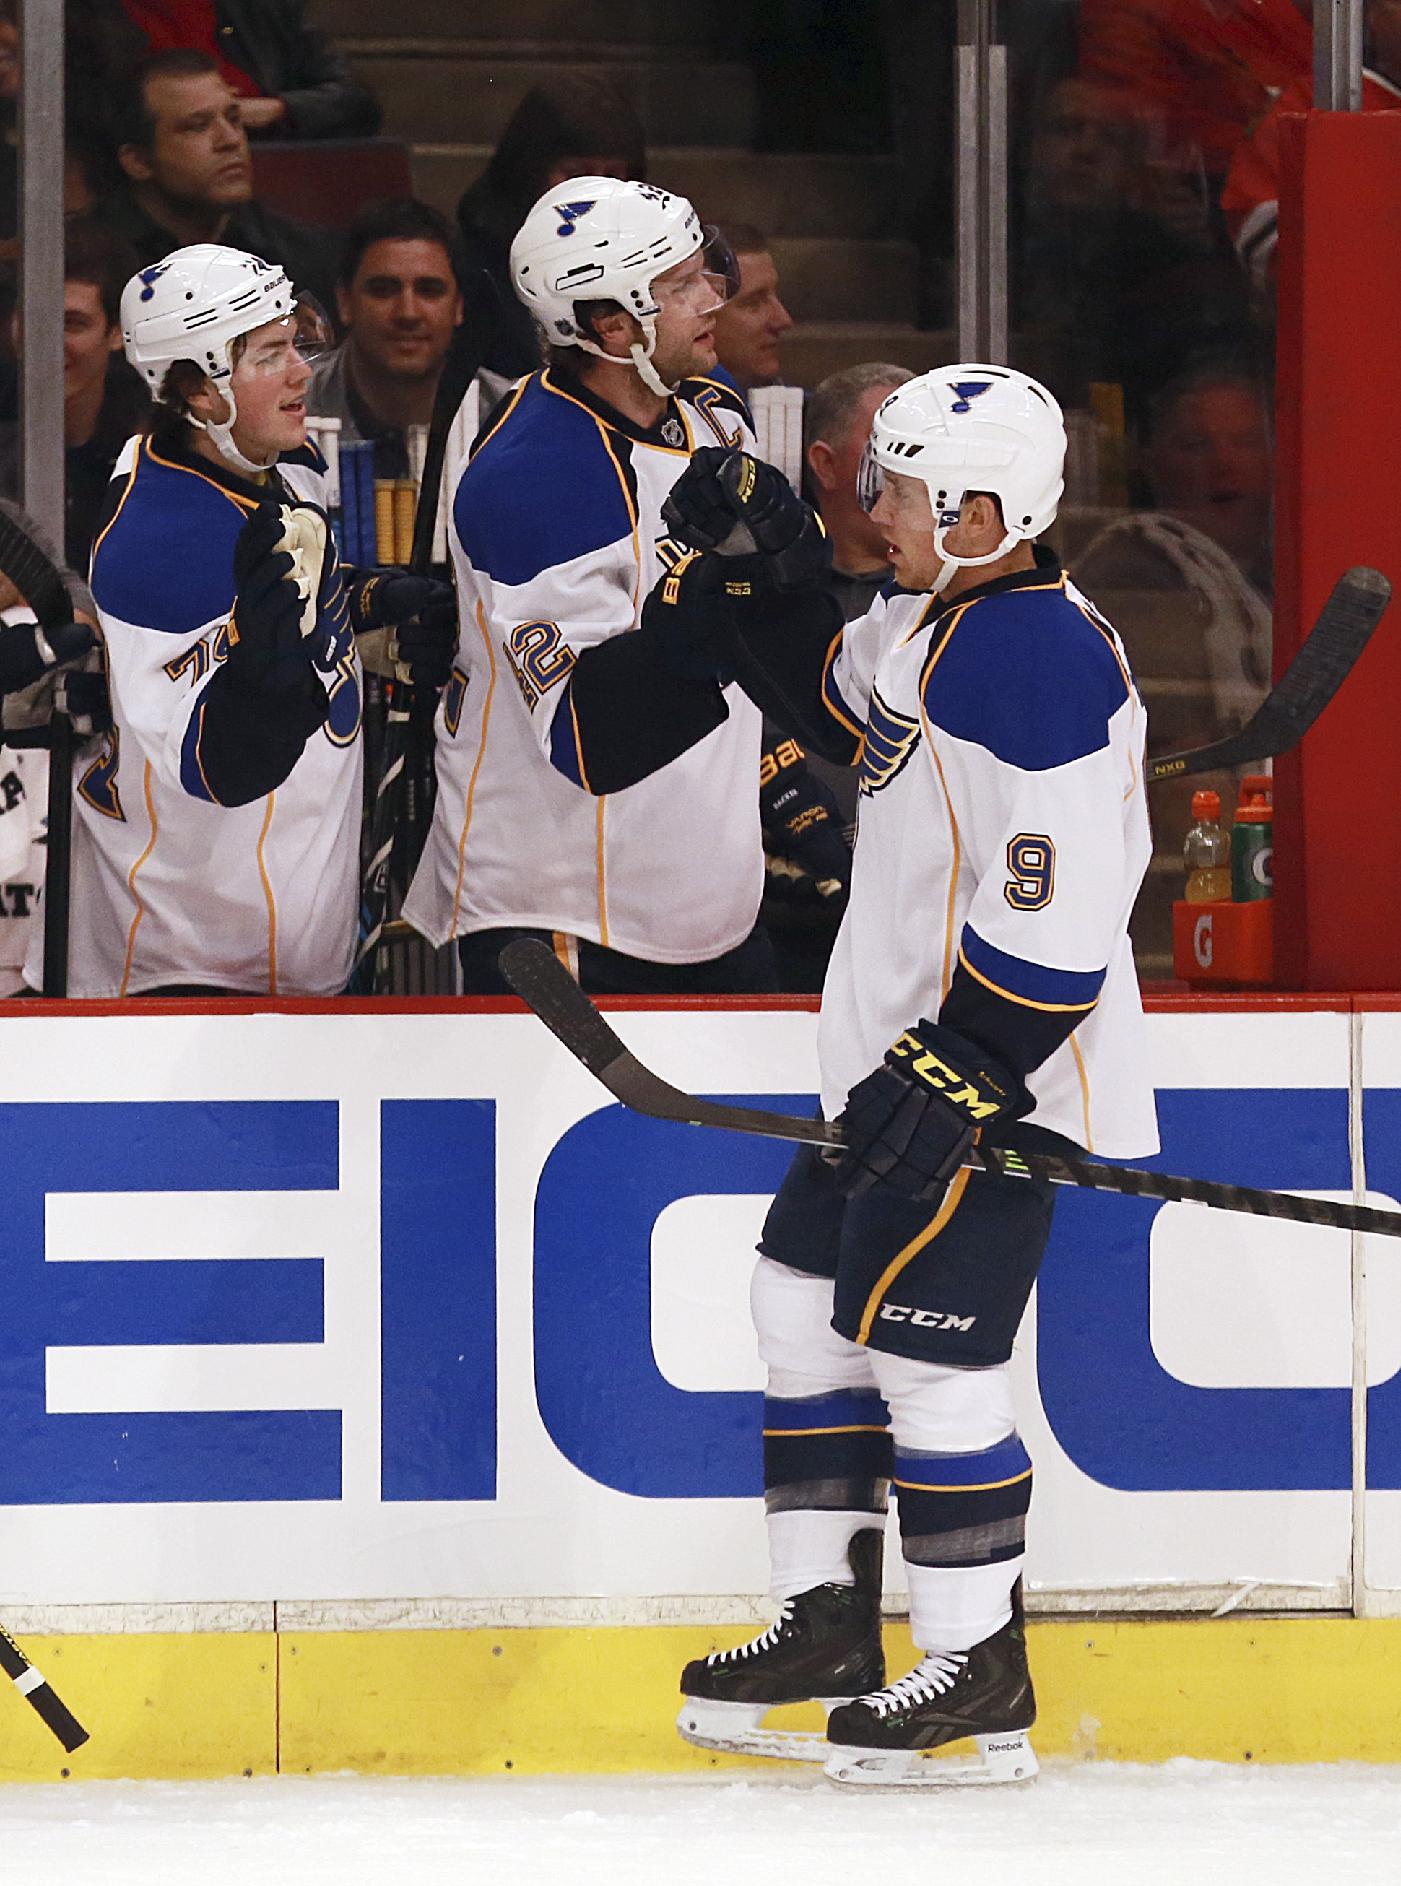 St Louis Blues' Jaden Schwartz, right, celebrates with teammates T.J. Oschie, left, and David Backes after scoring a first period goal against the Chicago Blackhawks in an NHL hockey game in Chicago on Sunday, April 6, 2014